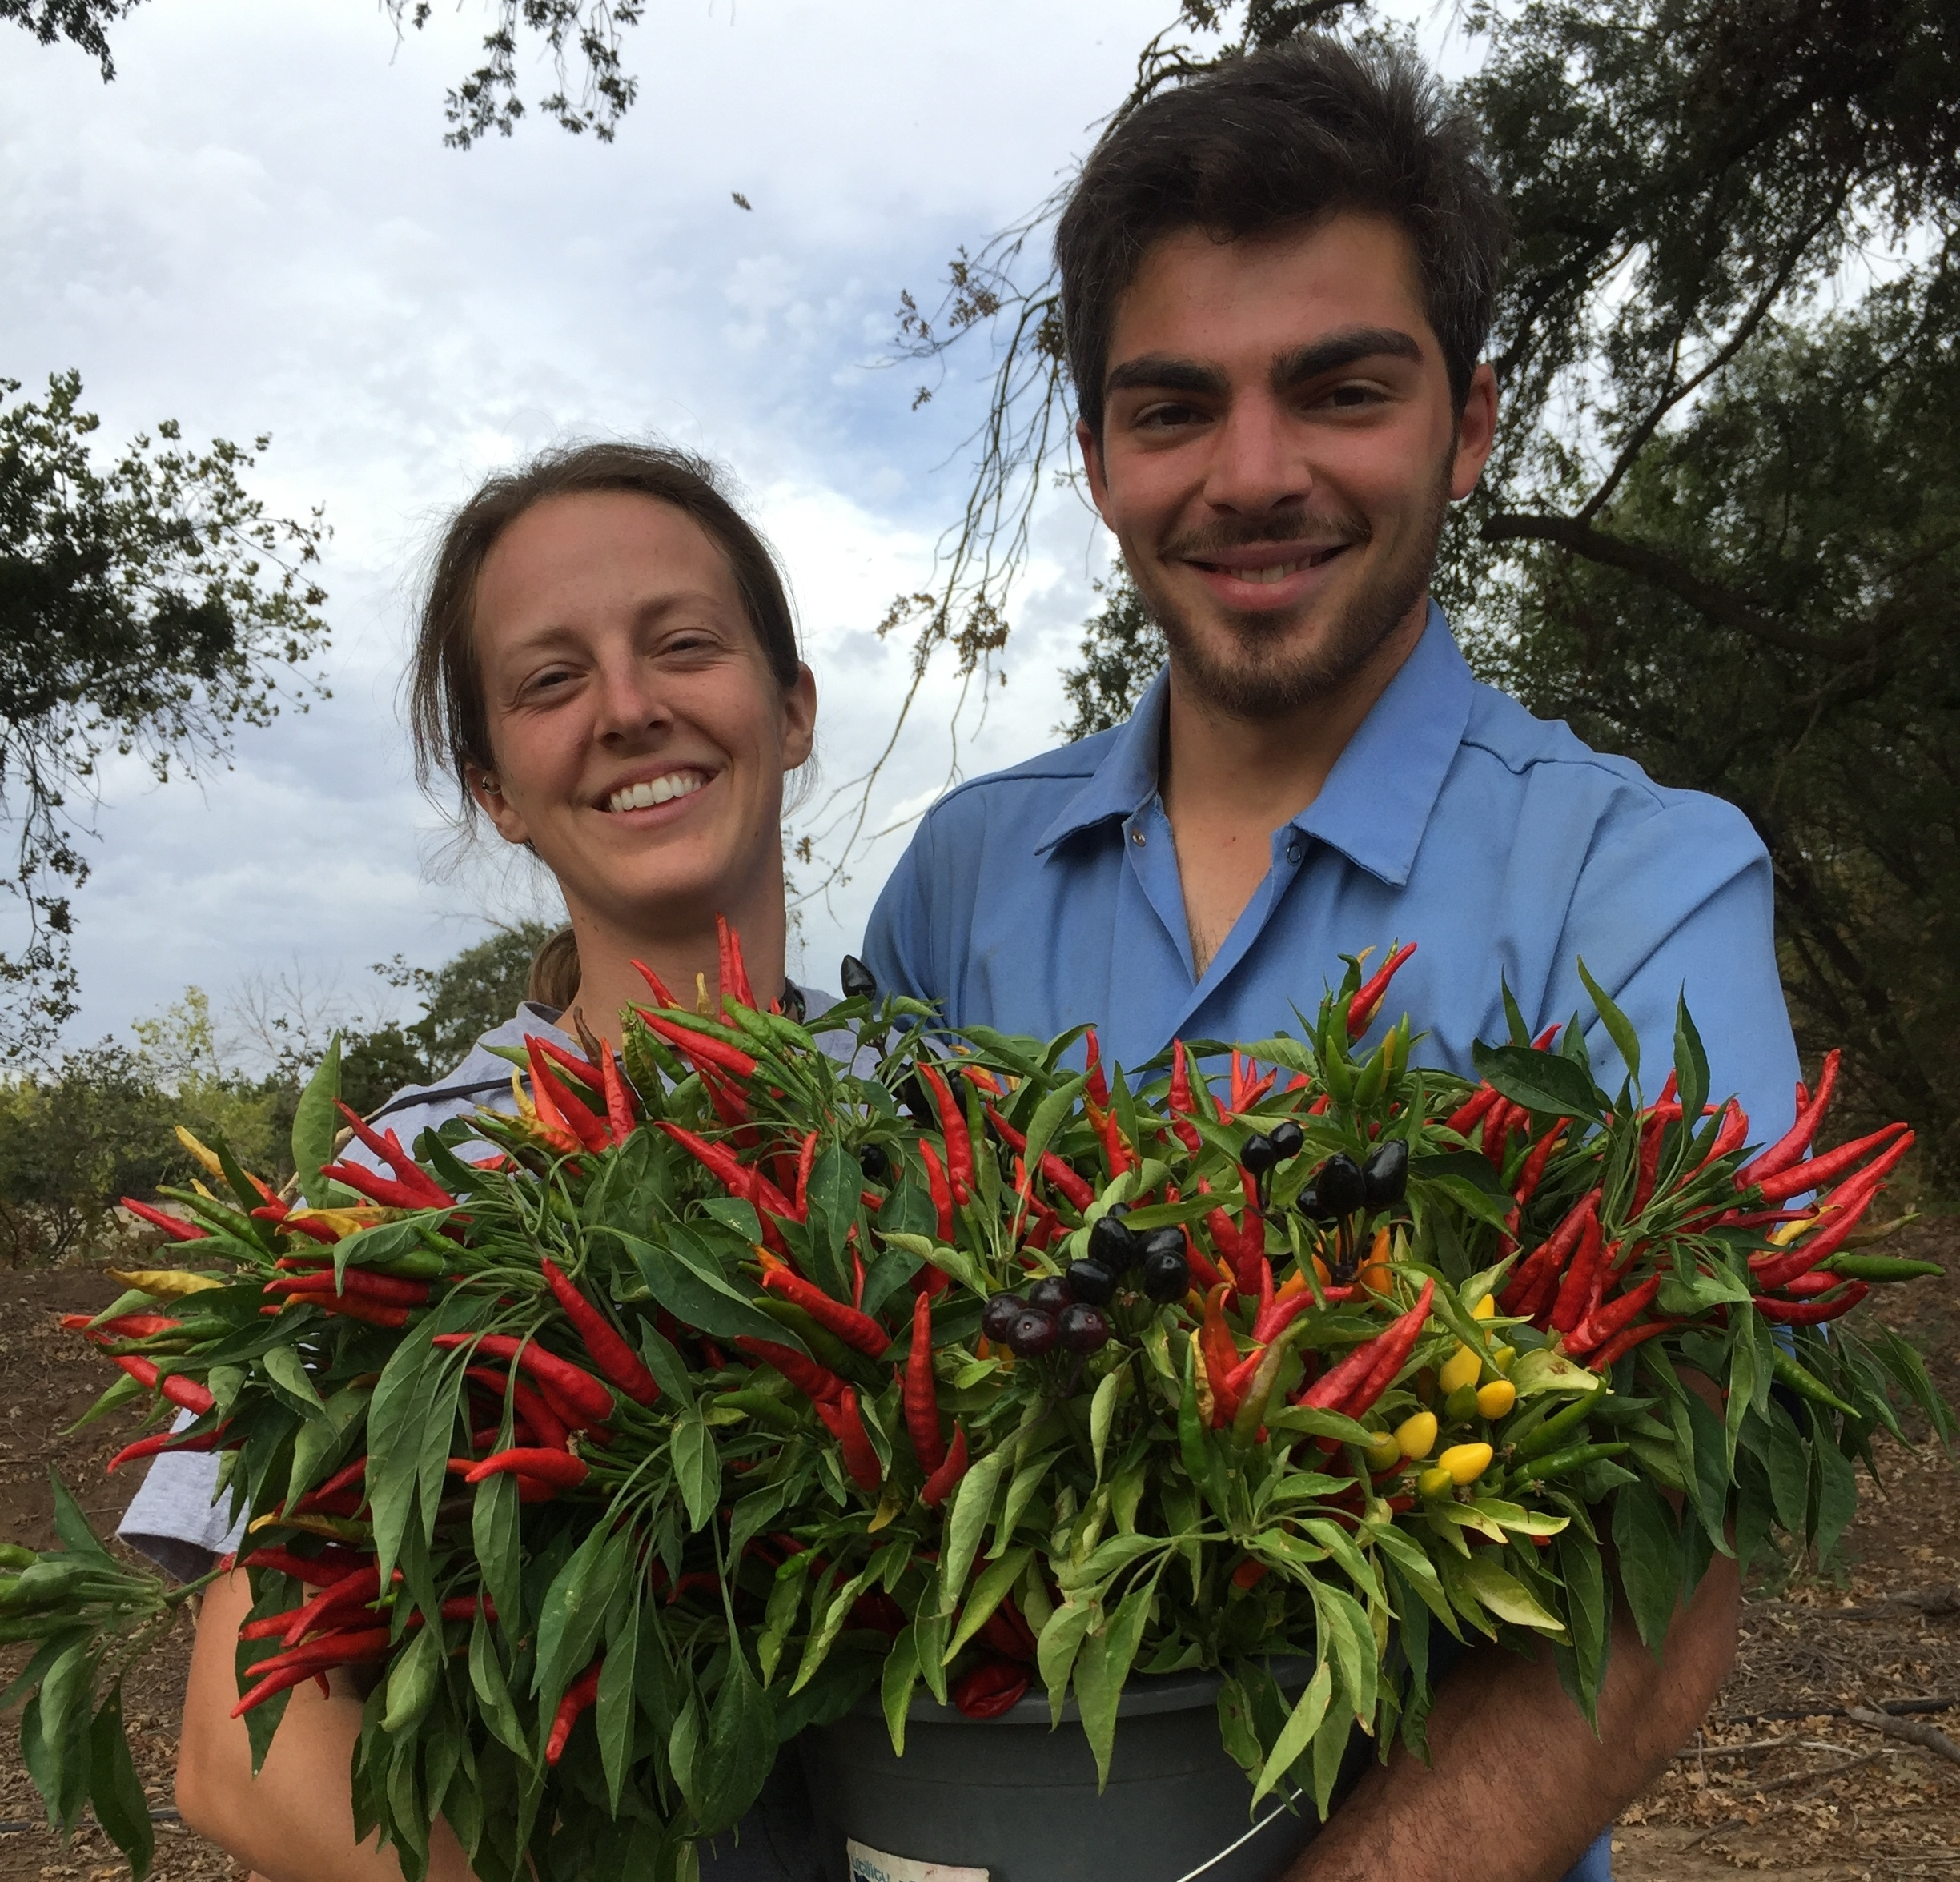 We love these spicy peppers! They add unique texture and color to our Autumn bouquets.